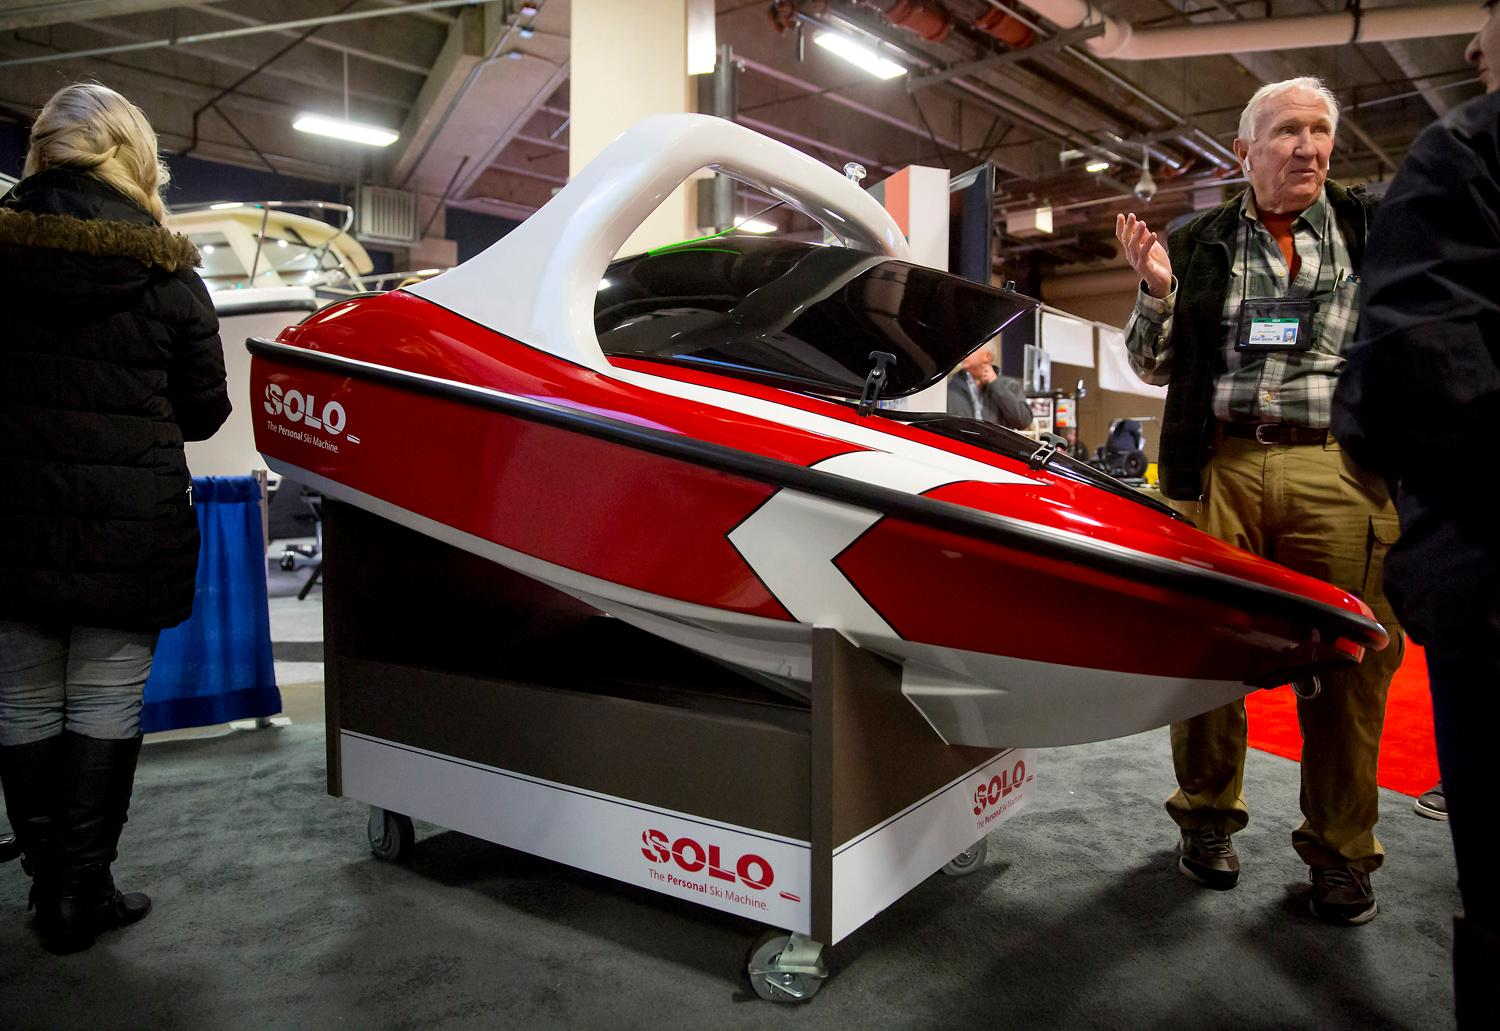 We spent another year at the Seattle Boat Show and found the strangest and most unique boat yet! It's called Solo - part boat, part personal wakeboard machine - and for those who have the cash, it looks like a blast. It's basically an eight foot, remote control miniature jet ski, built for all the water-skiers and wake-boarders out there. The boat is controlled wirelessly via the tow handle, and tracks your position via bluetooth in case you let go. Coming in at $24,995, this is the ultimate toy. (Sy Bean / Seattle Refined)